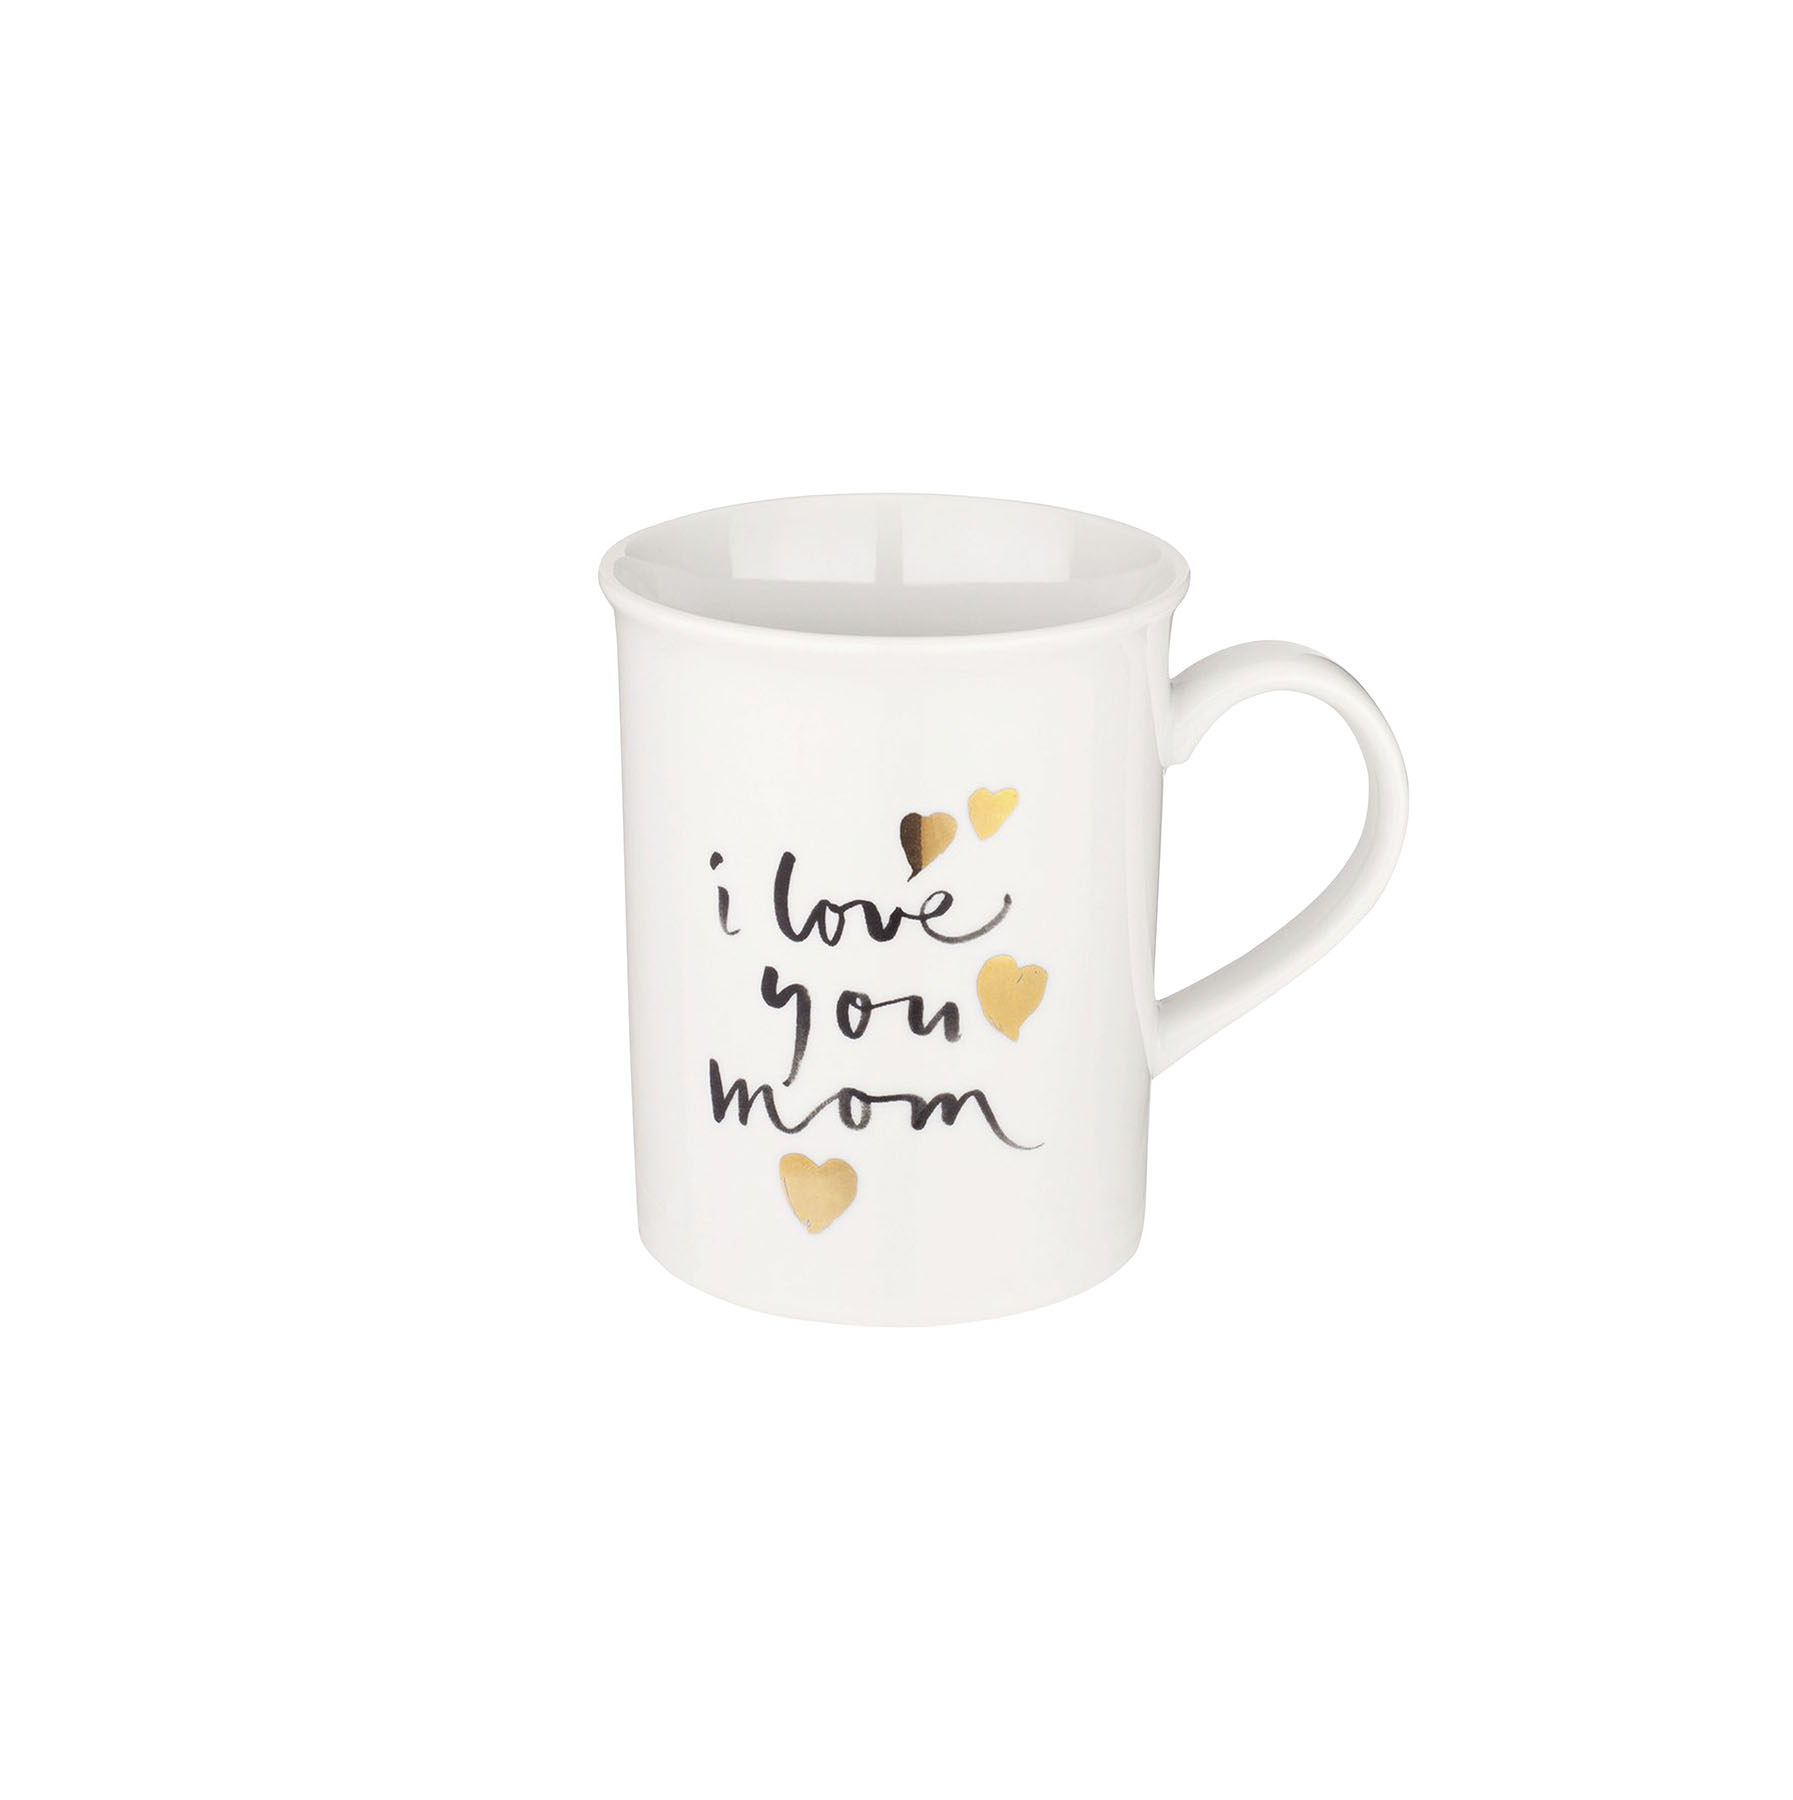 I Love You Mom Porcelain Mug